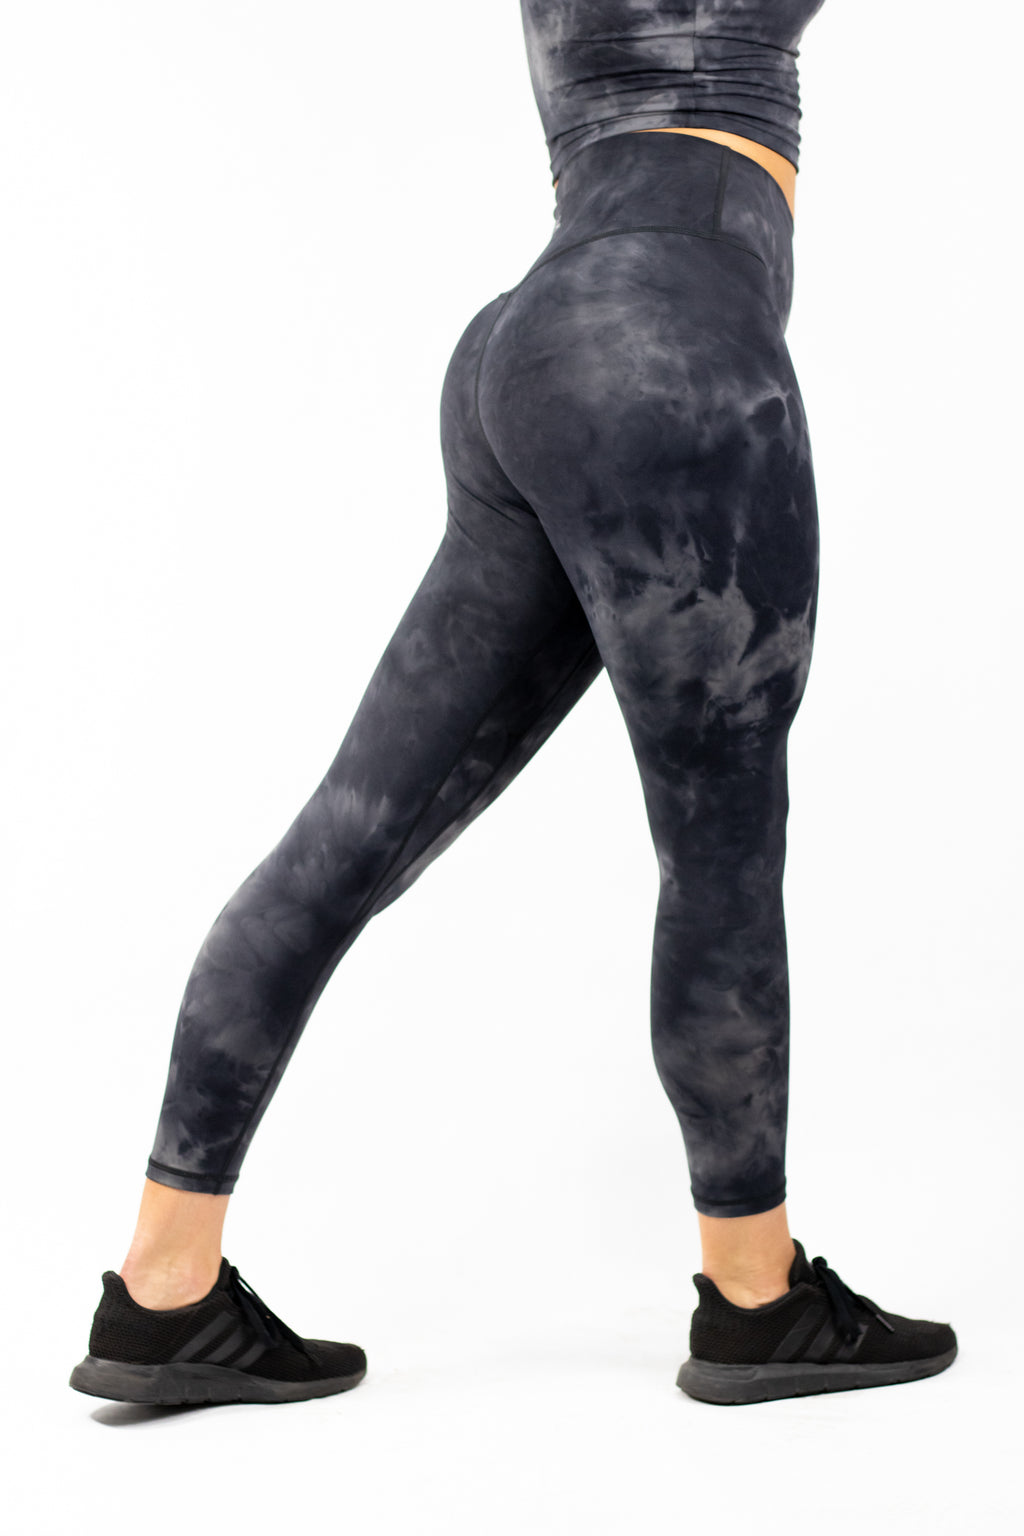 Plush V2 Combat High Waisted Workout Tie Dye Leggings Women